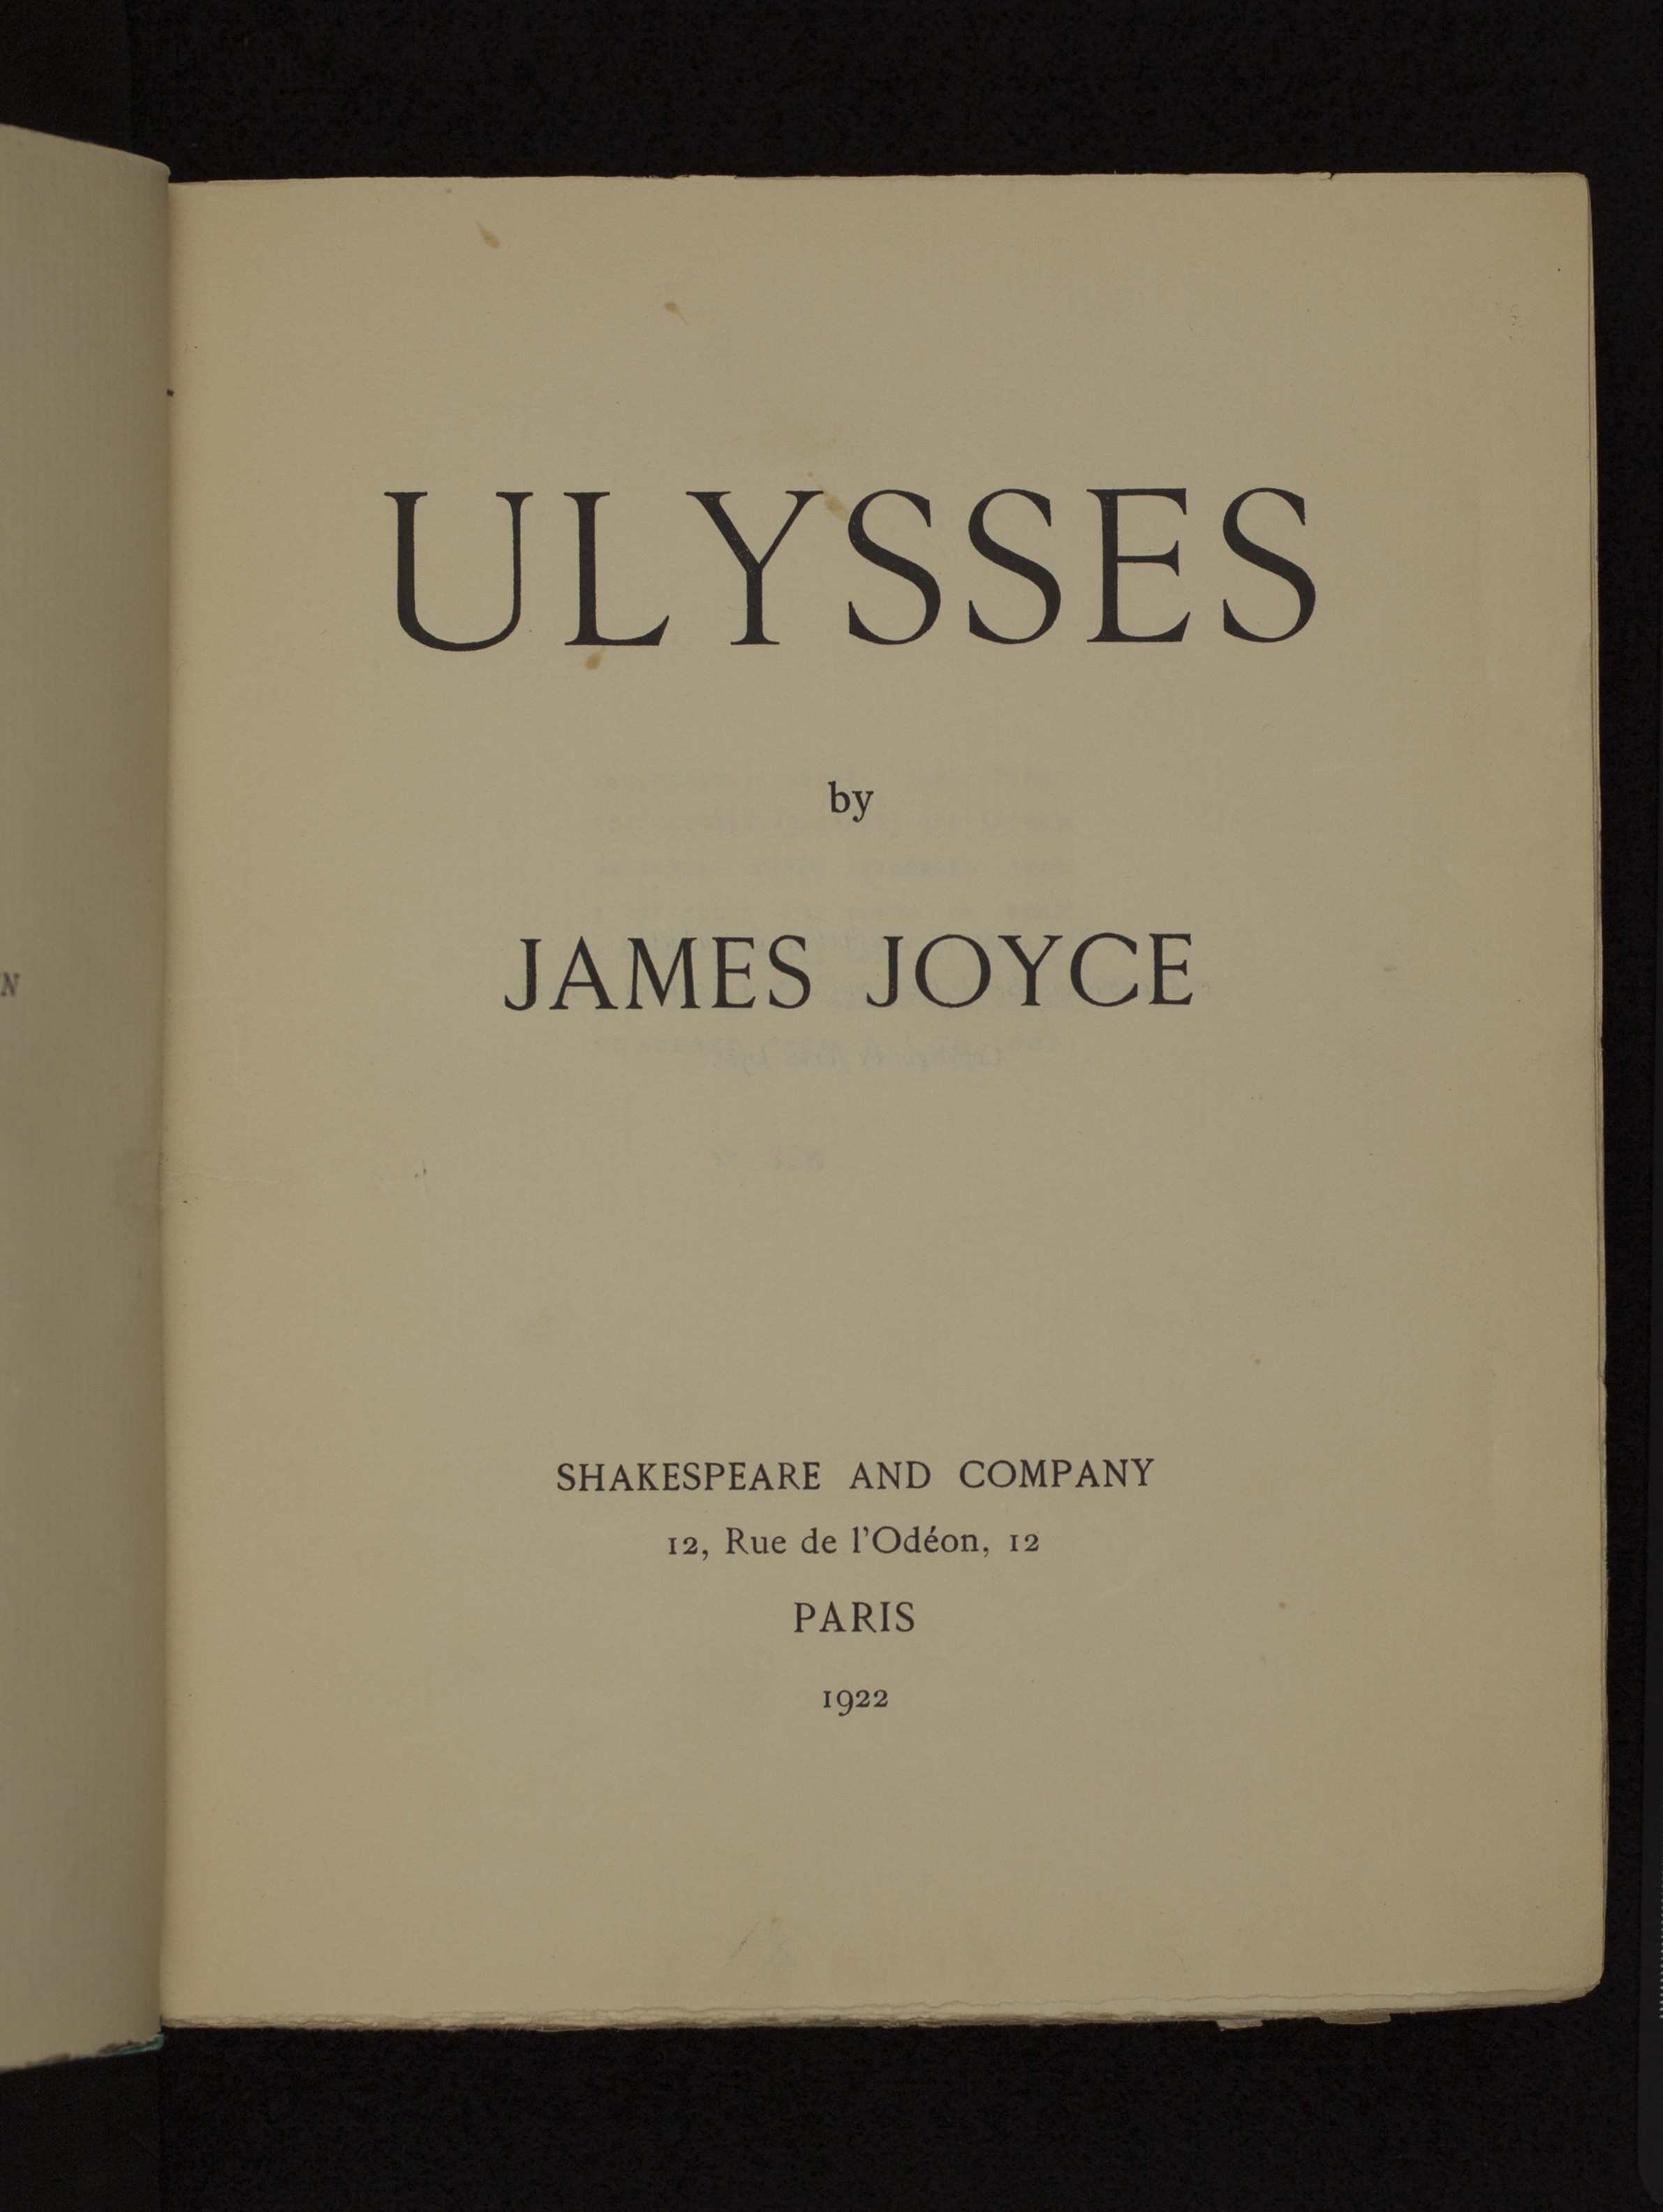 History of the book chapter 10 modern publishing figure 4 james joyce ulysses shakespeare and company paris 1922 pr6019 j85u 1922 the controversial book by james joyce was first published in this buycottarizona